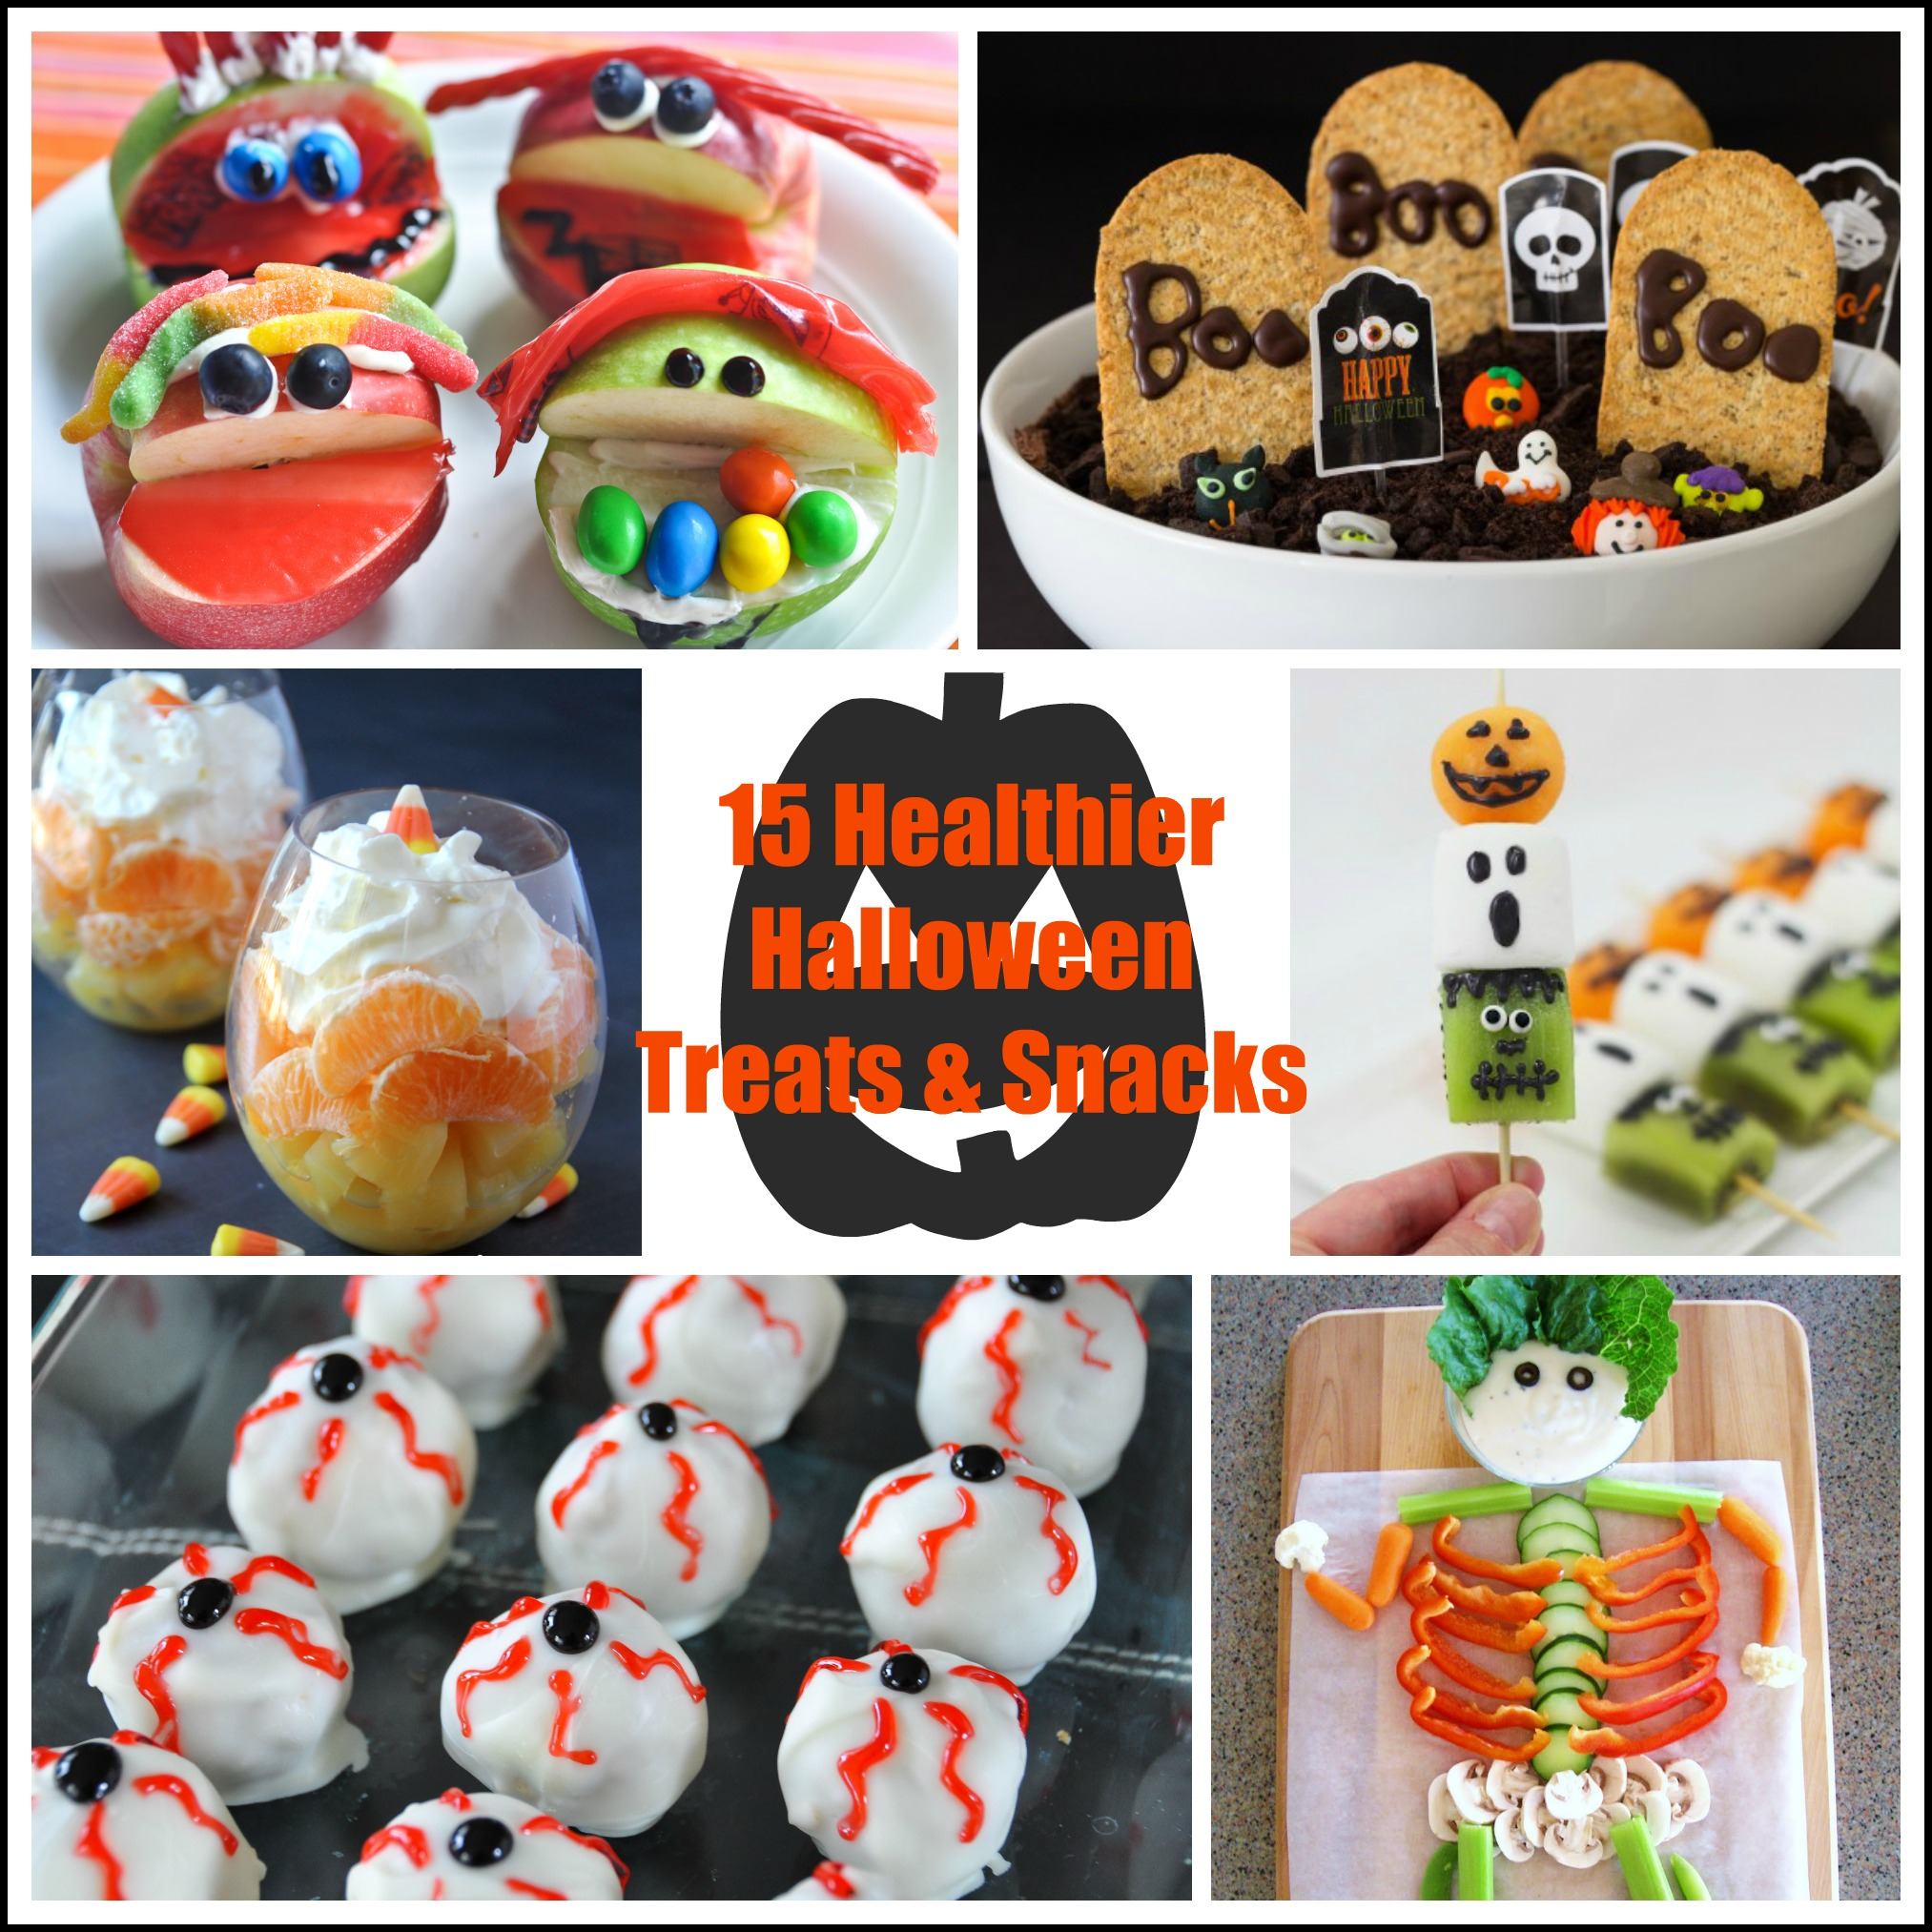 15 Healthier Halloween Treats and Snacks | Nutritious Eats